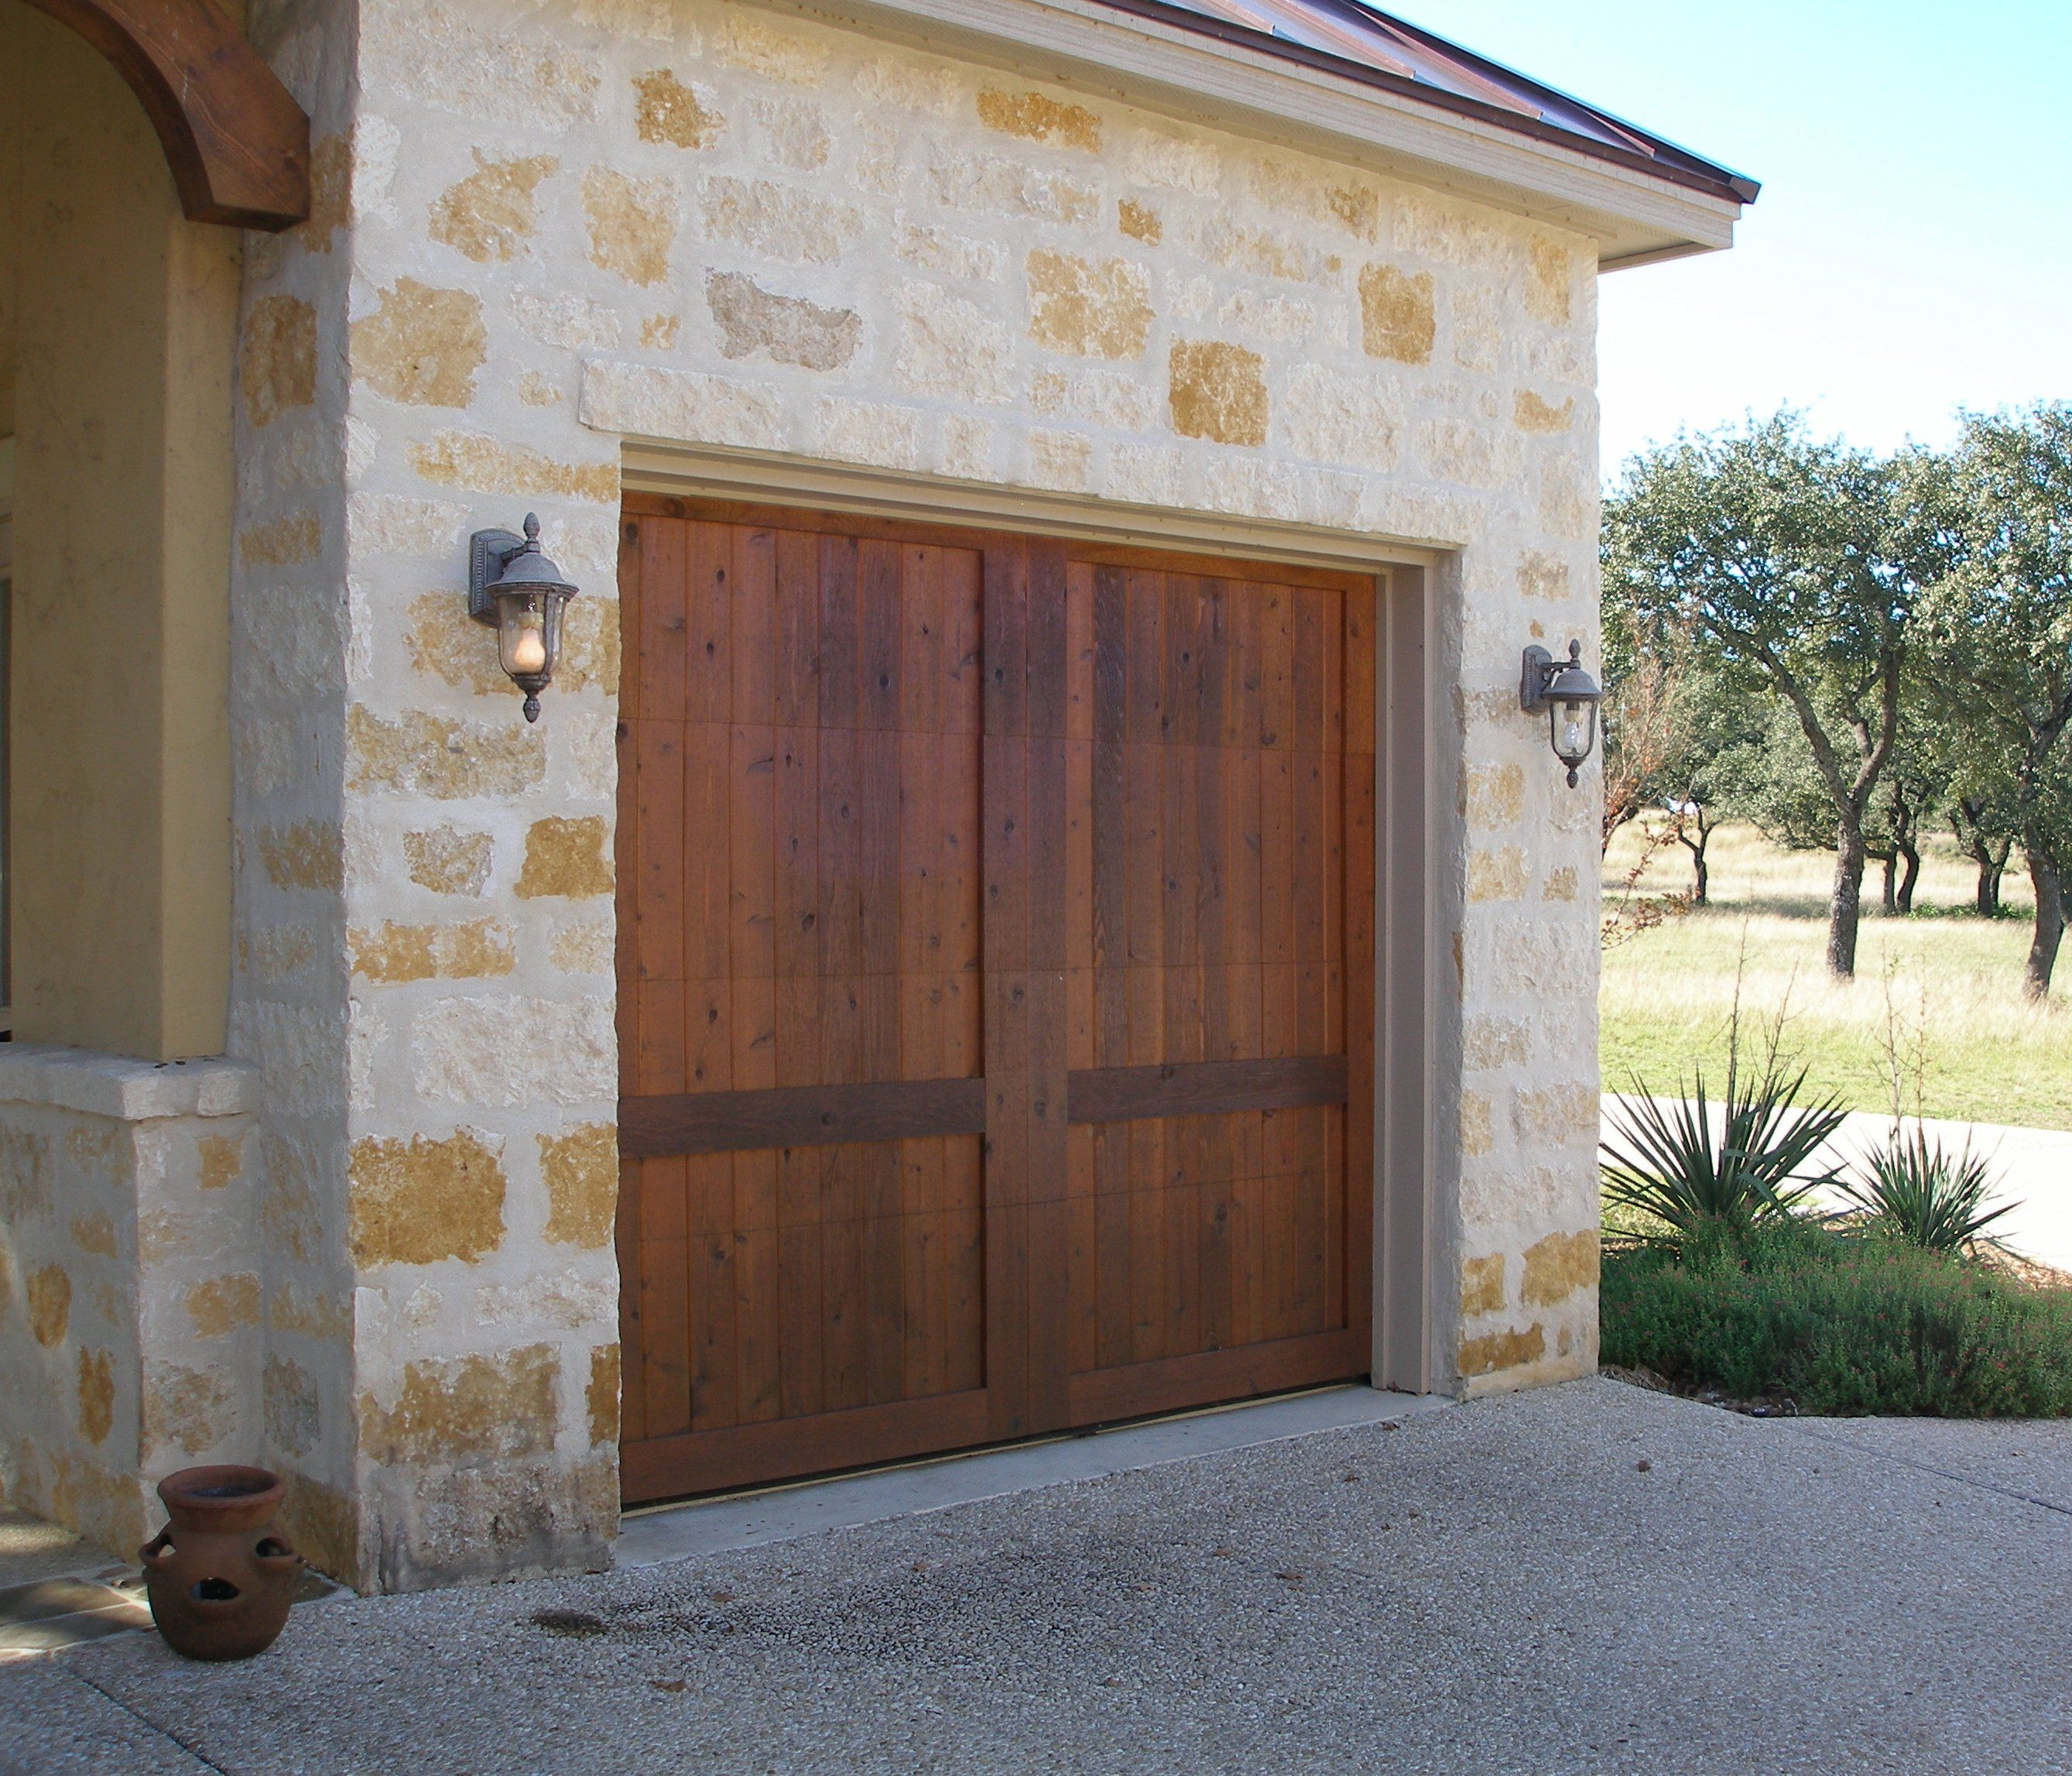 springs full fort near doors installation of companies in me door hormann garage tx size repair worth clopay